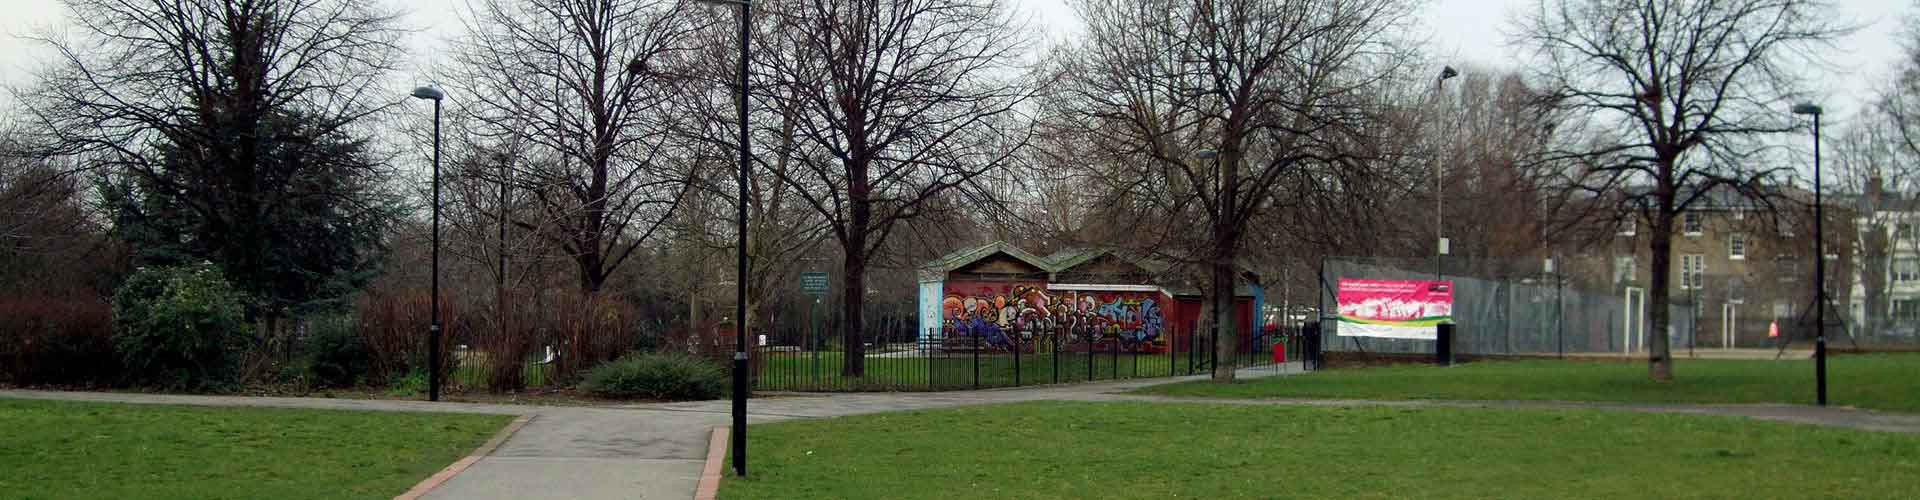 London – Youth Hostels in Borough of Islington. Maps of London, Photos and Reviews for each Youth Hostels in London.